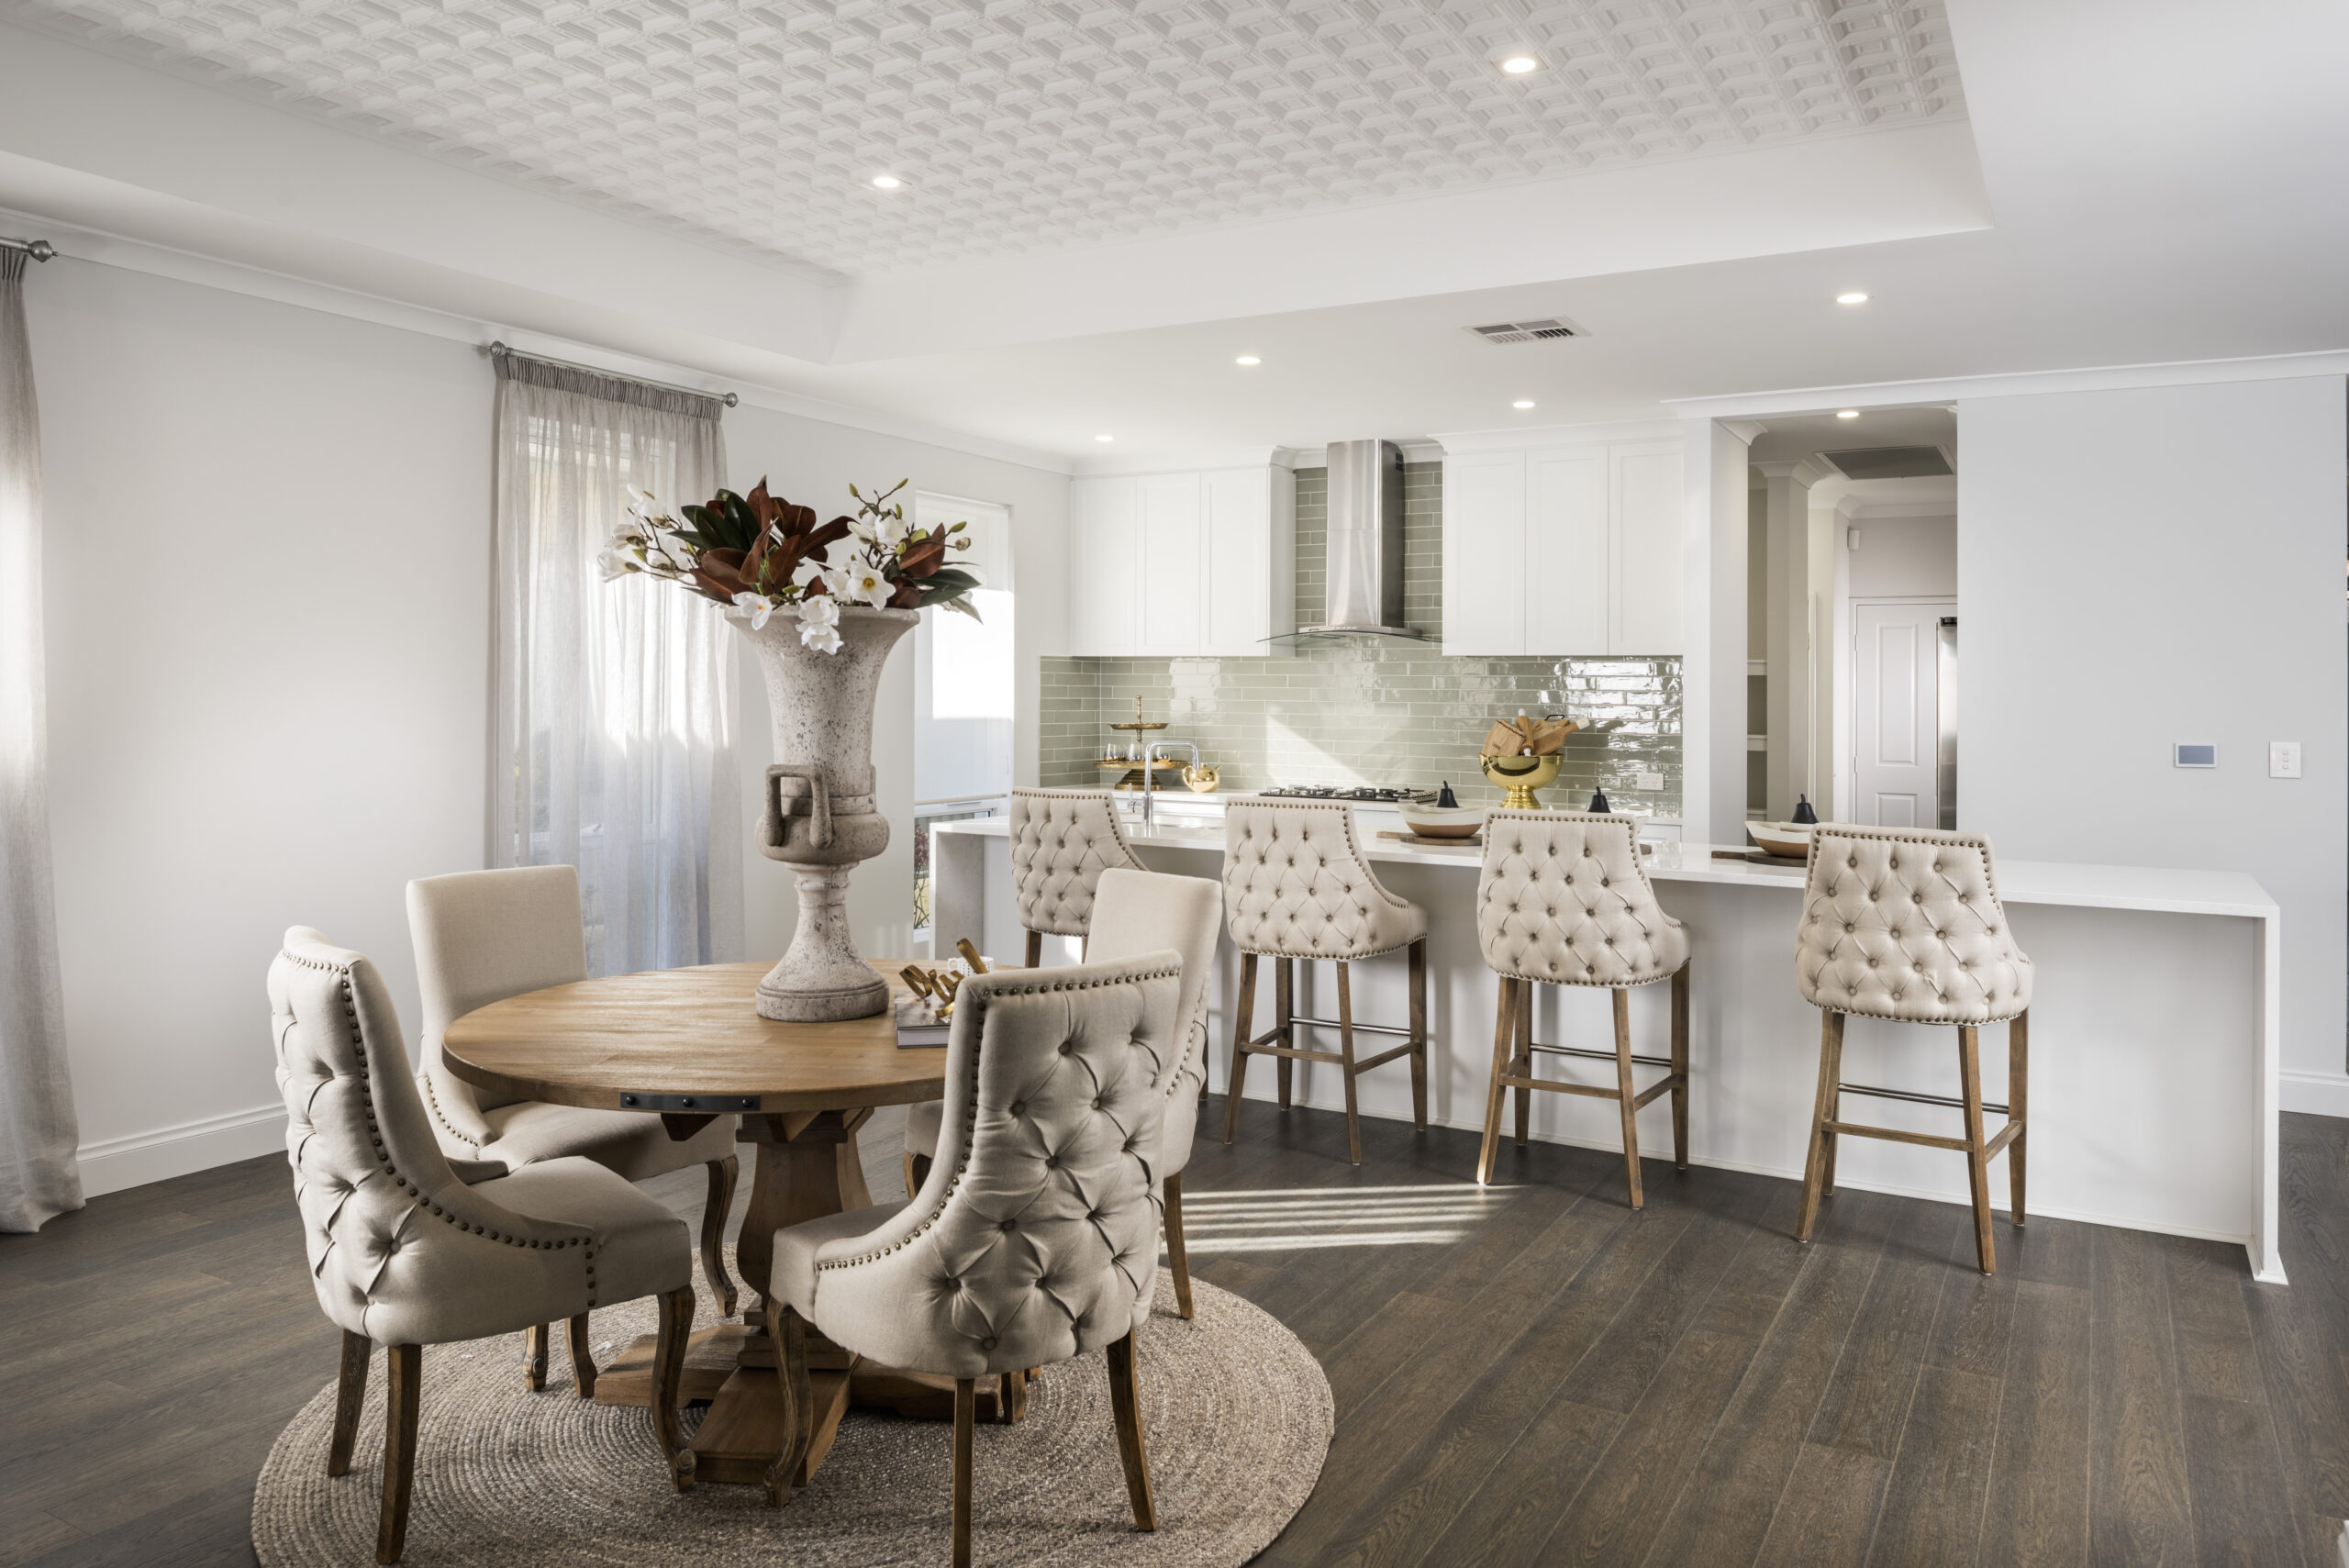 The Long Island Display - Plunkett Homes